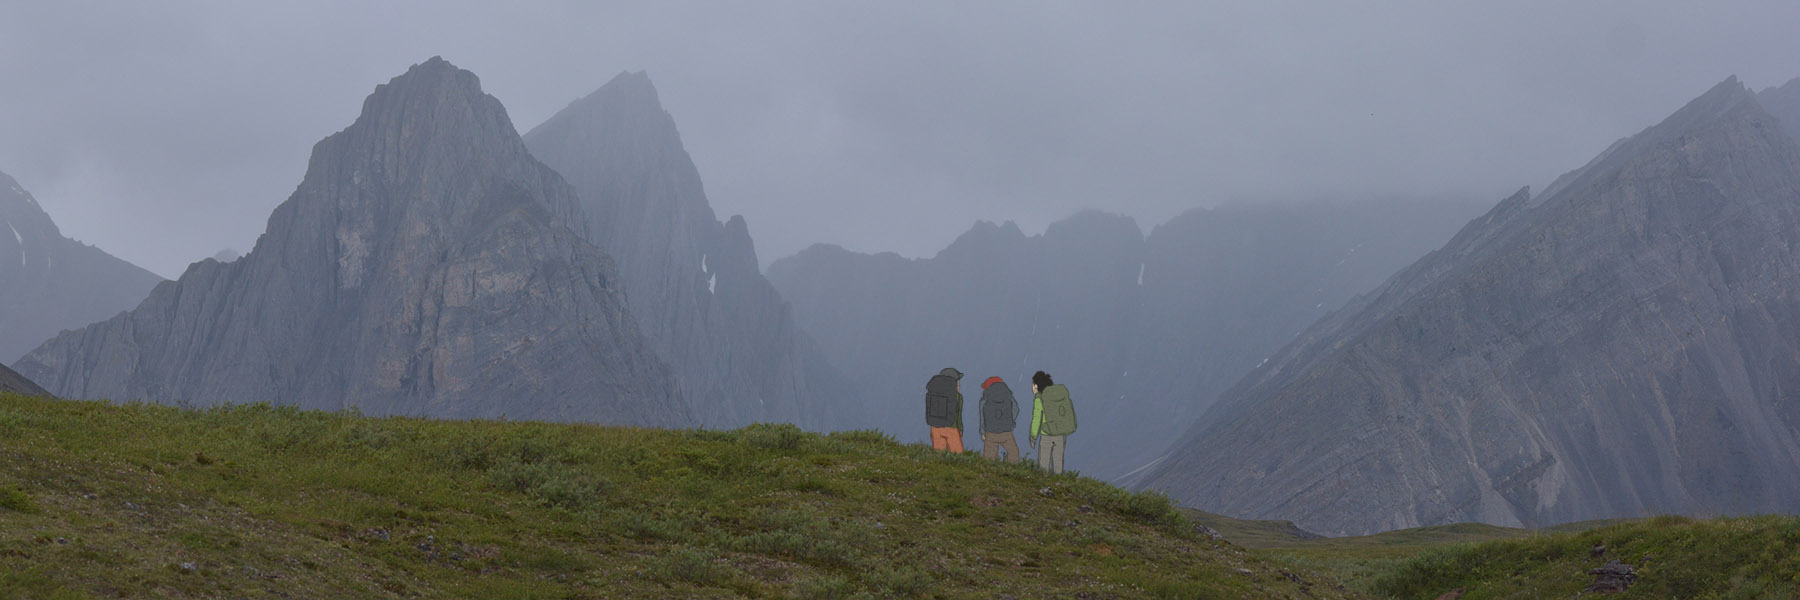 Three backpackers stand in front of tall, craggy mountains in the Brooks Range